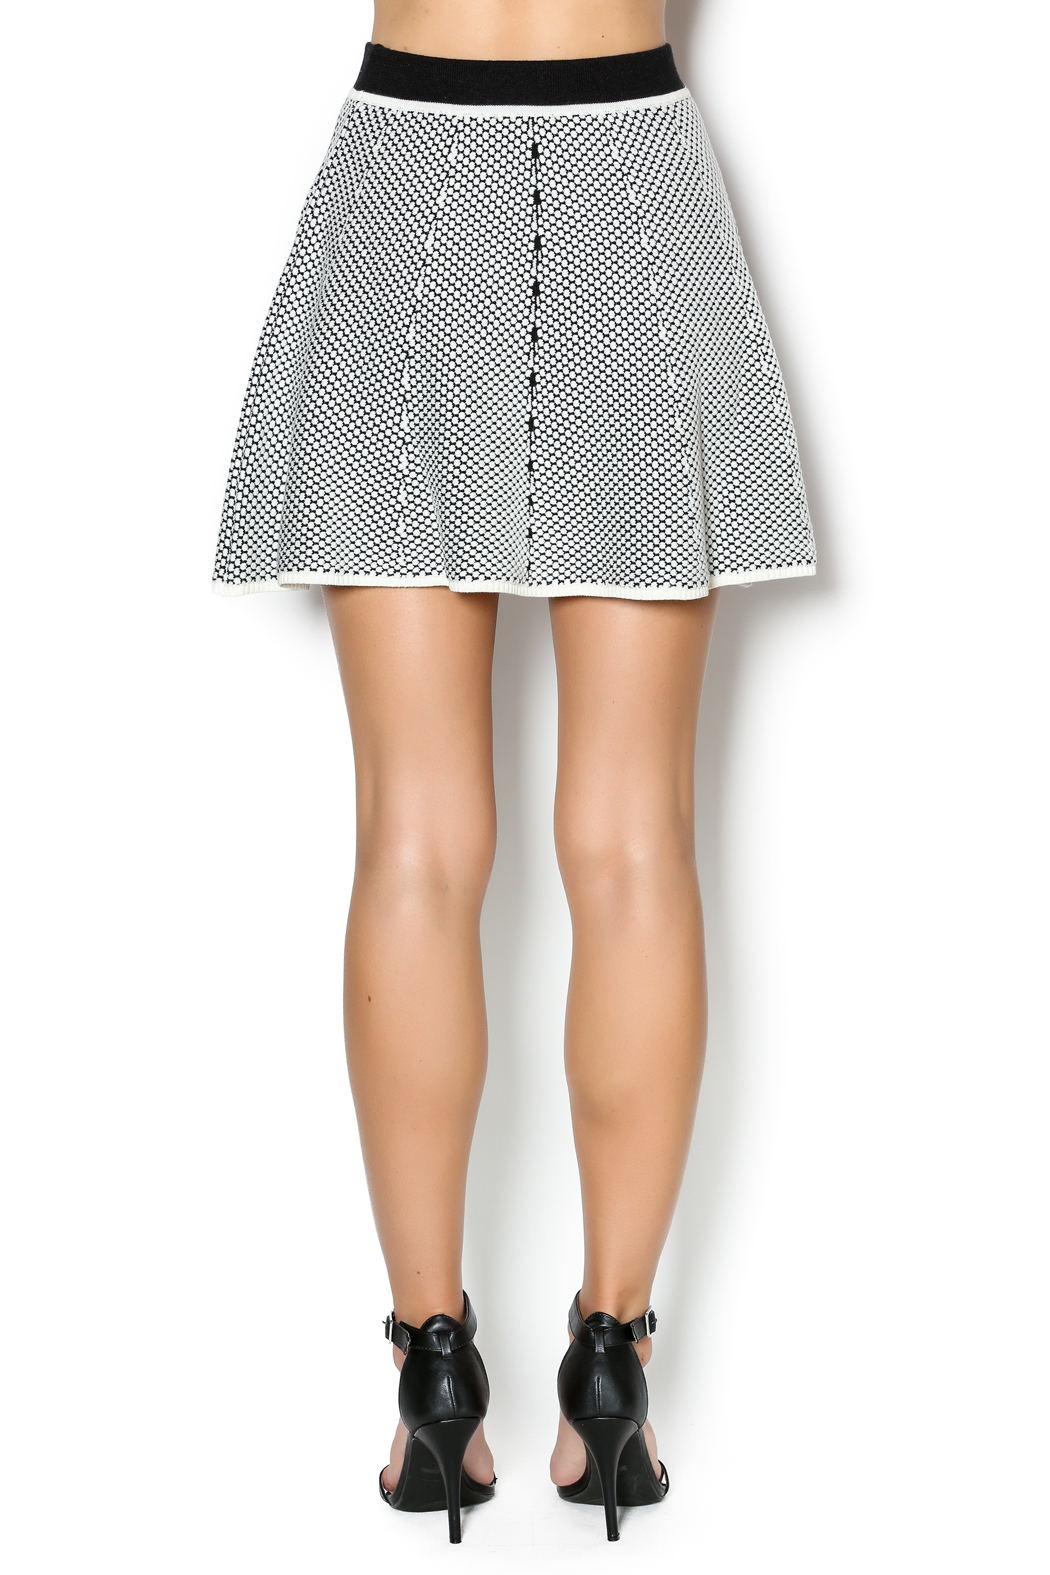 Lucy Paris Skater Skirt - Back Cropped Image